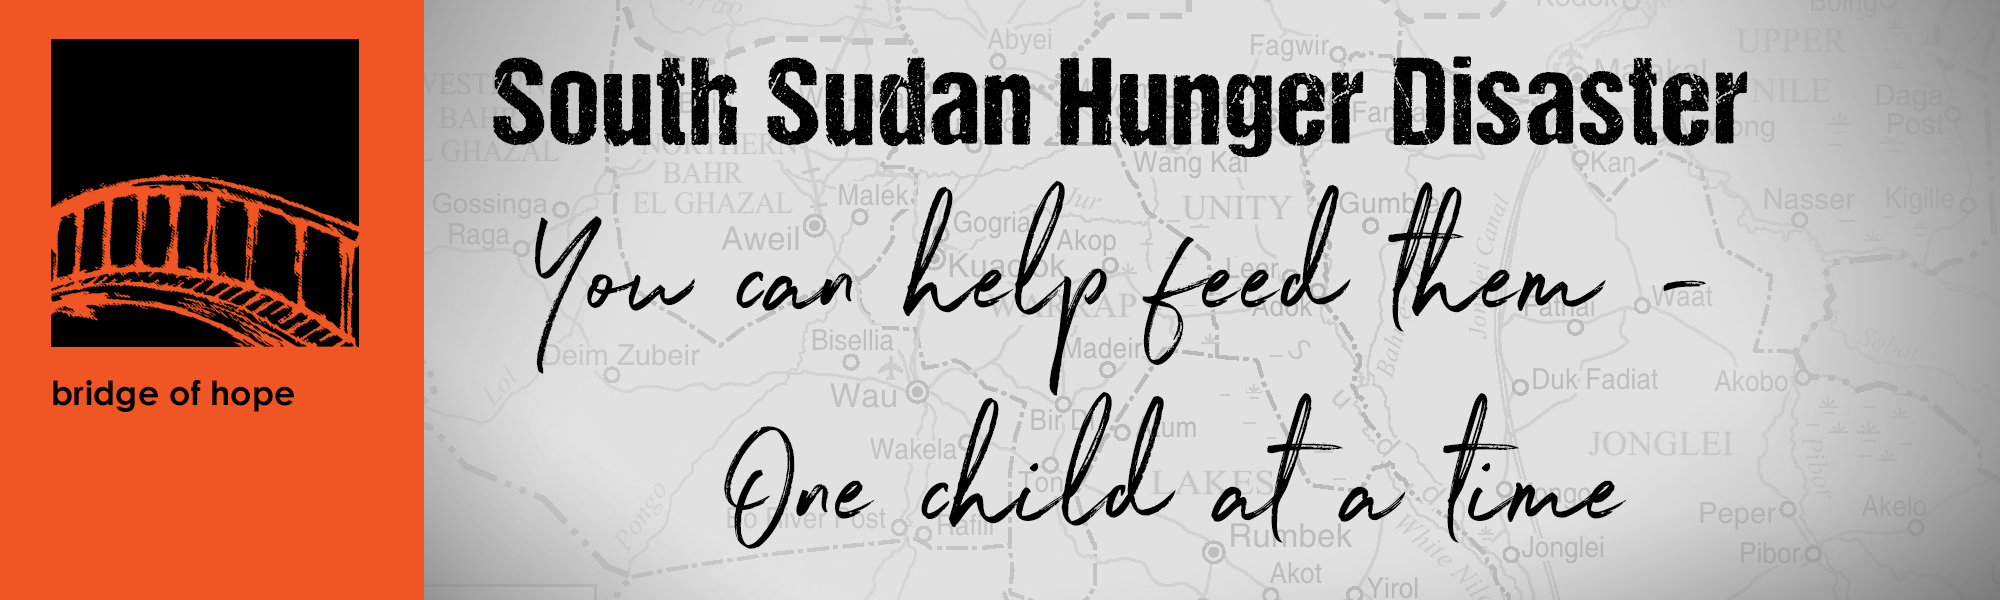 Families, children desperate for food! Matching challenge doubles your impact to help feed them